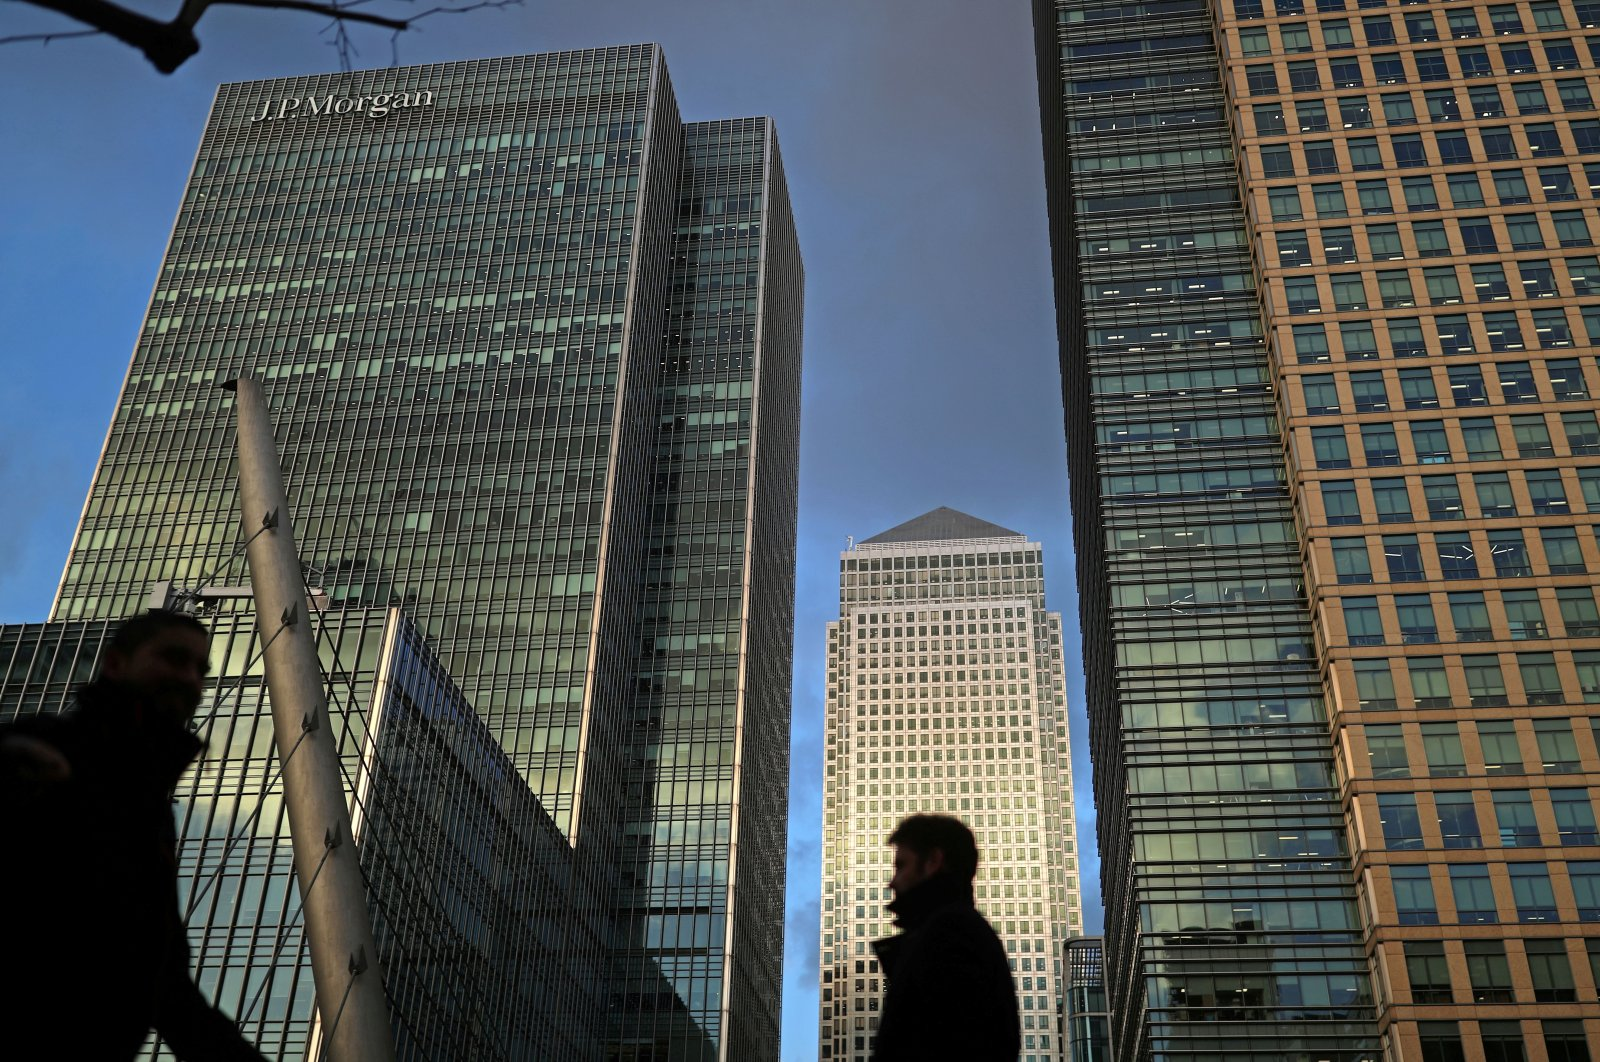 People walk through the Canary Wharf financial district of London, Britain, Dec. 7, 2018. (Reuters Photo)